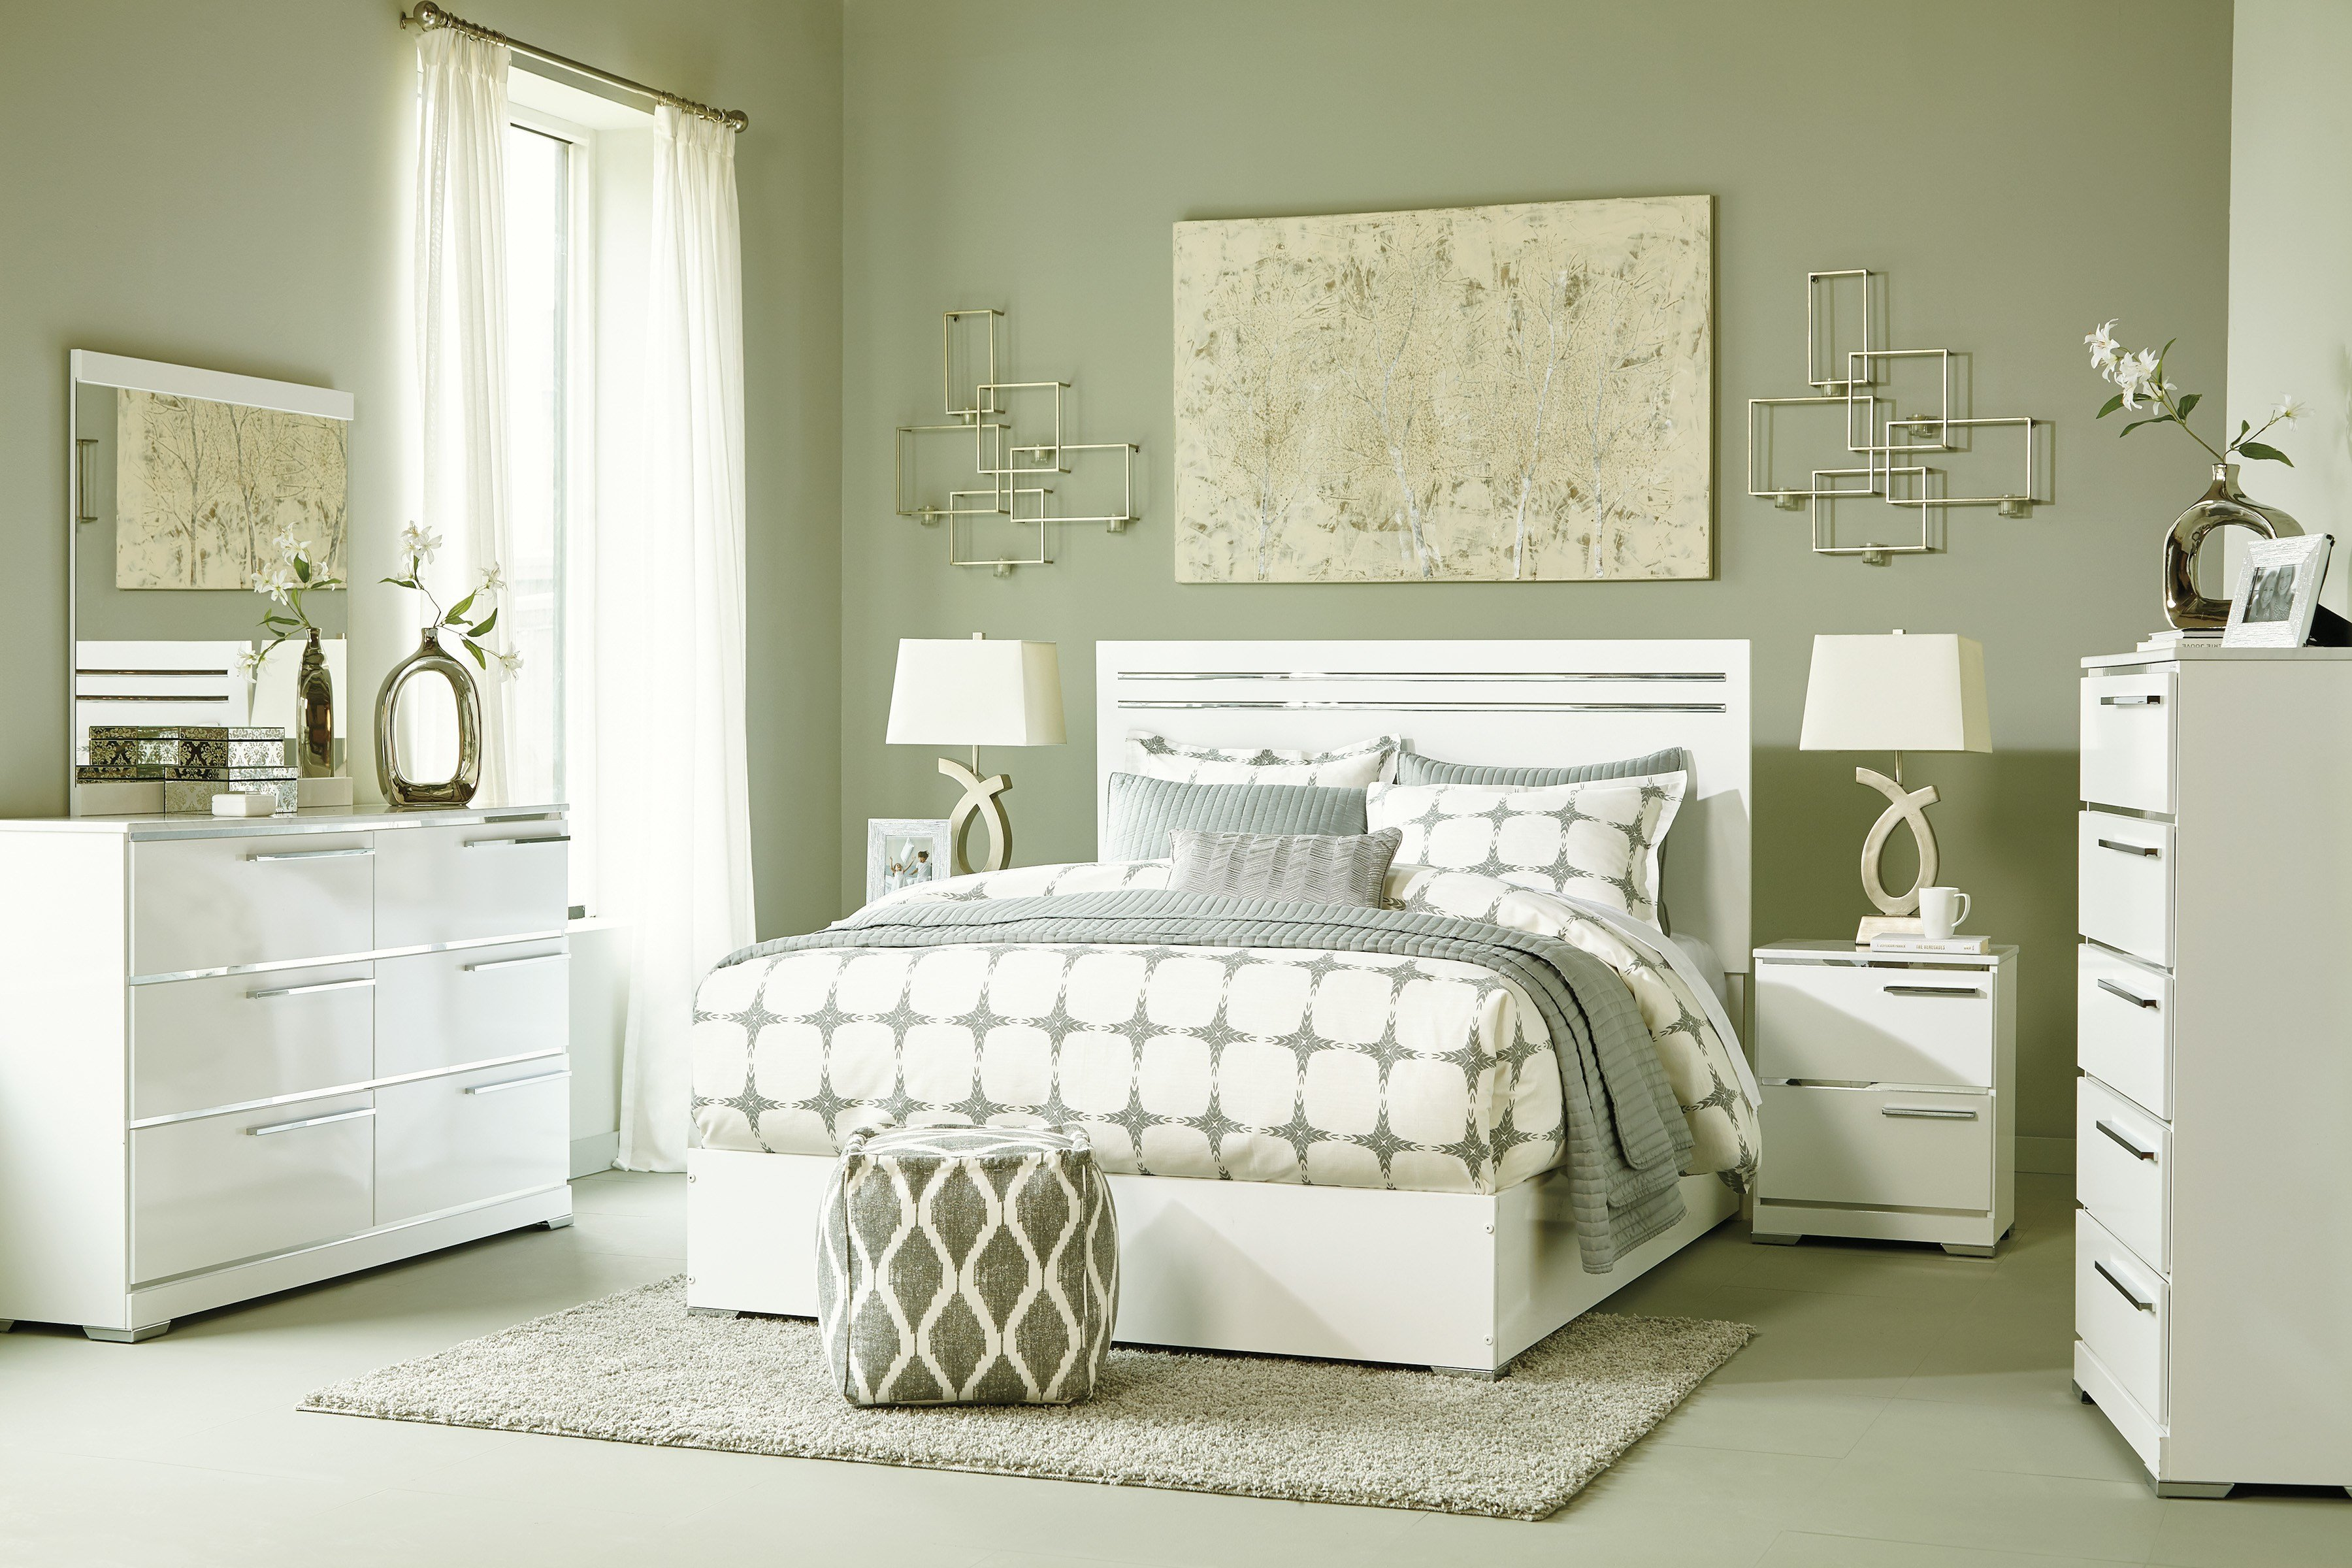 Best Brillaney White Bedroom Set Marjen Of Chicago Chicago With Pictures